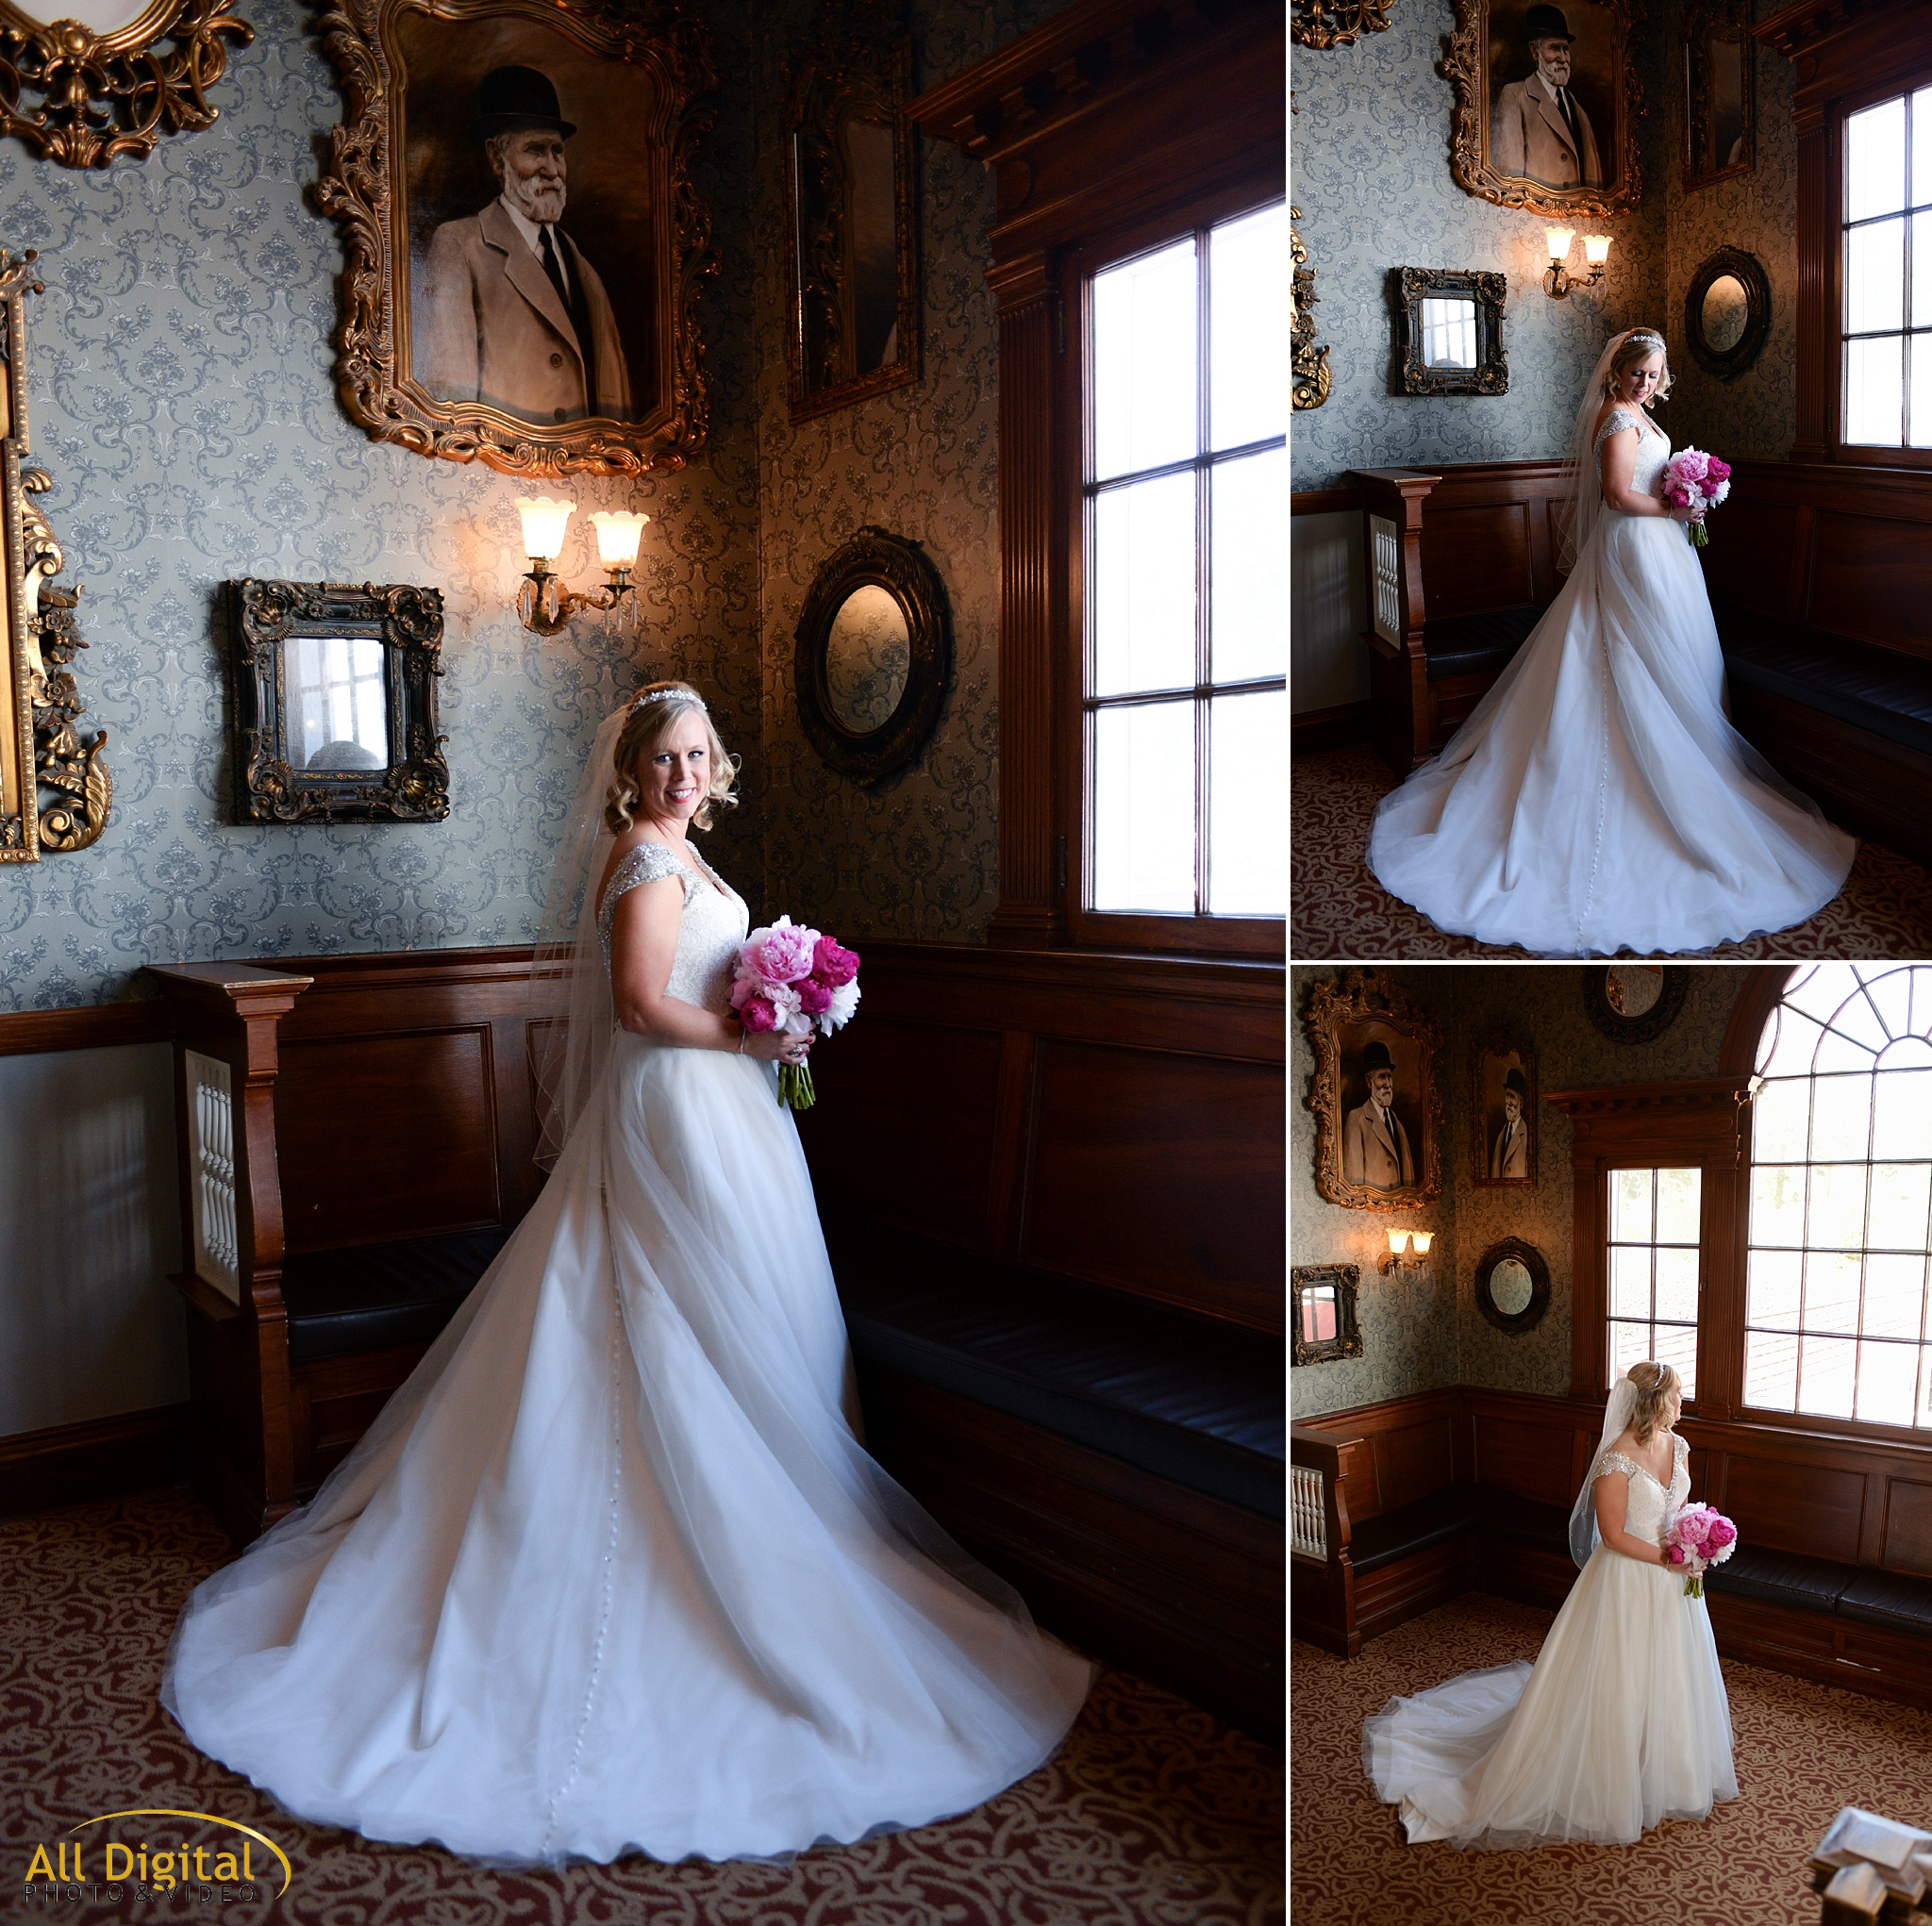 Alison's bridal portraits at the Stanley Hotel in Estes Park, Colorado